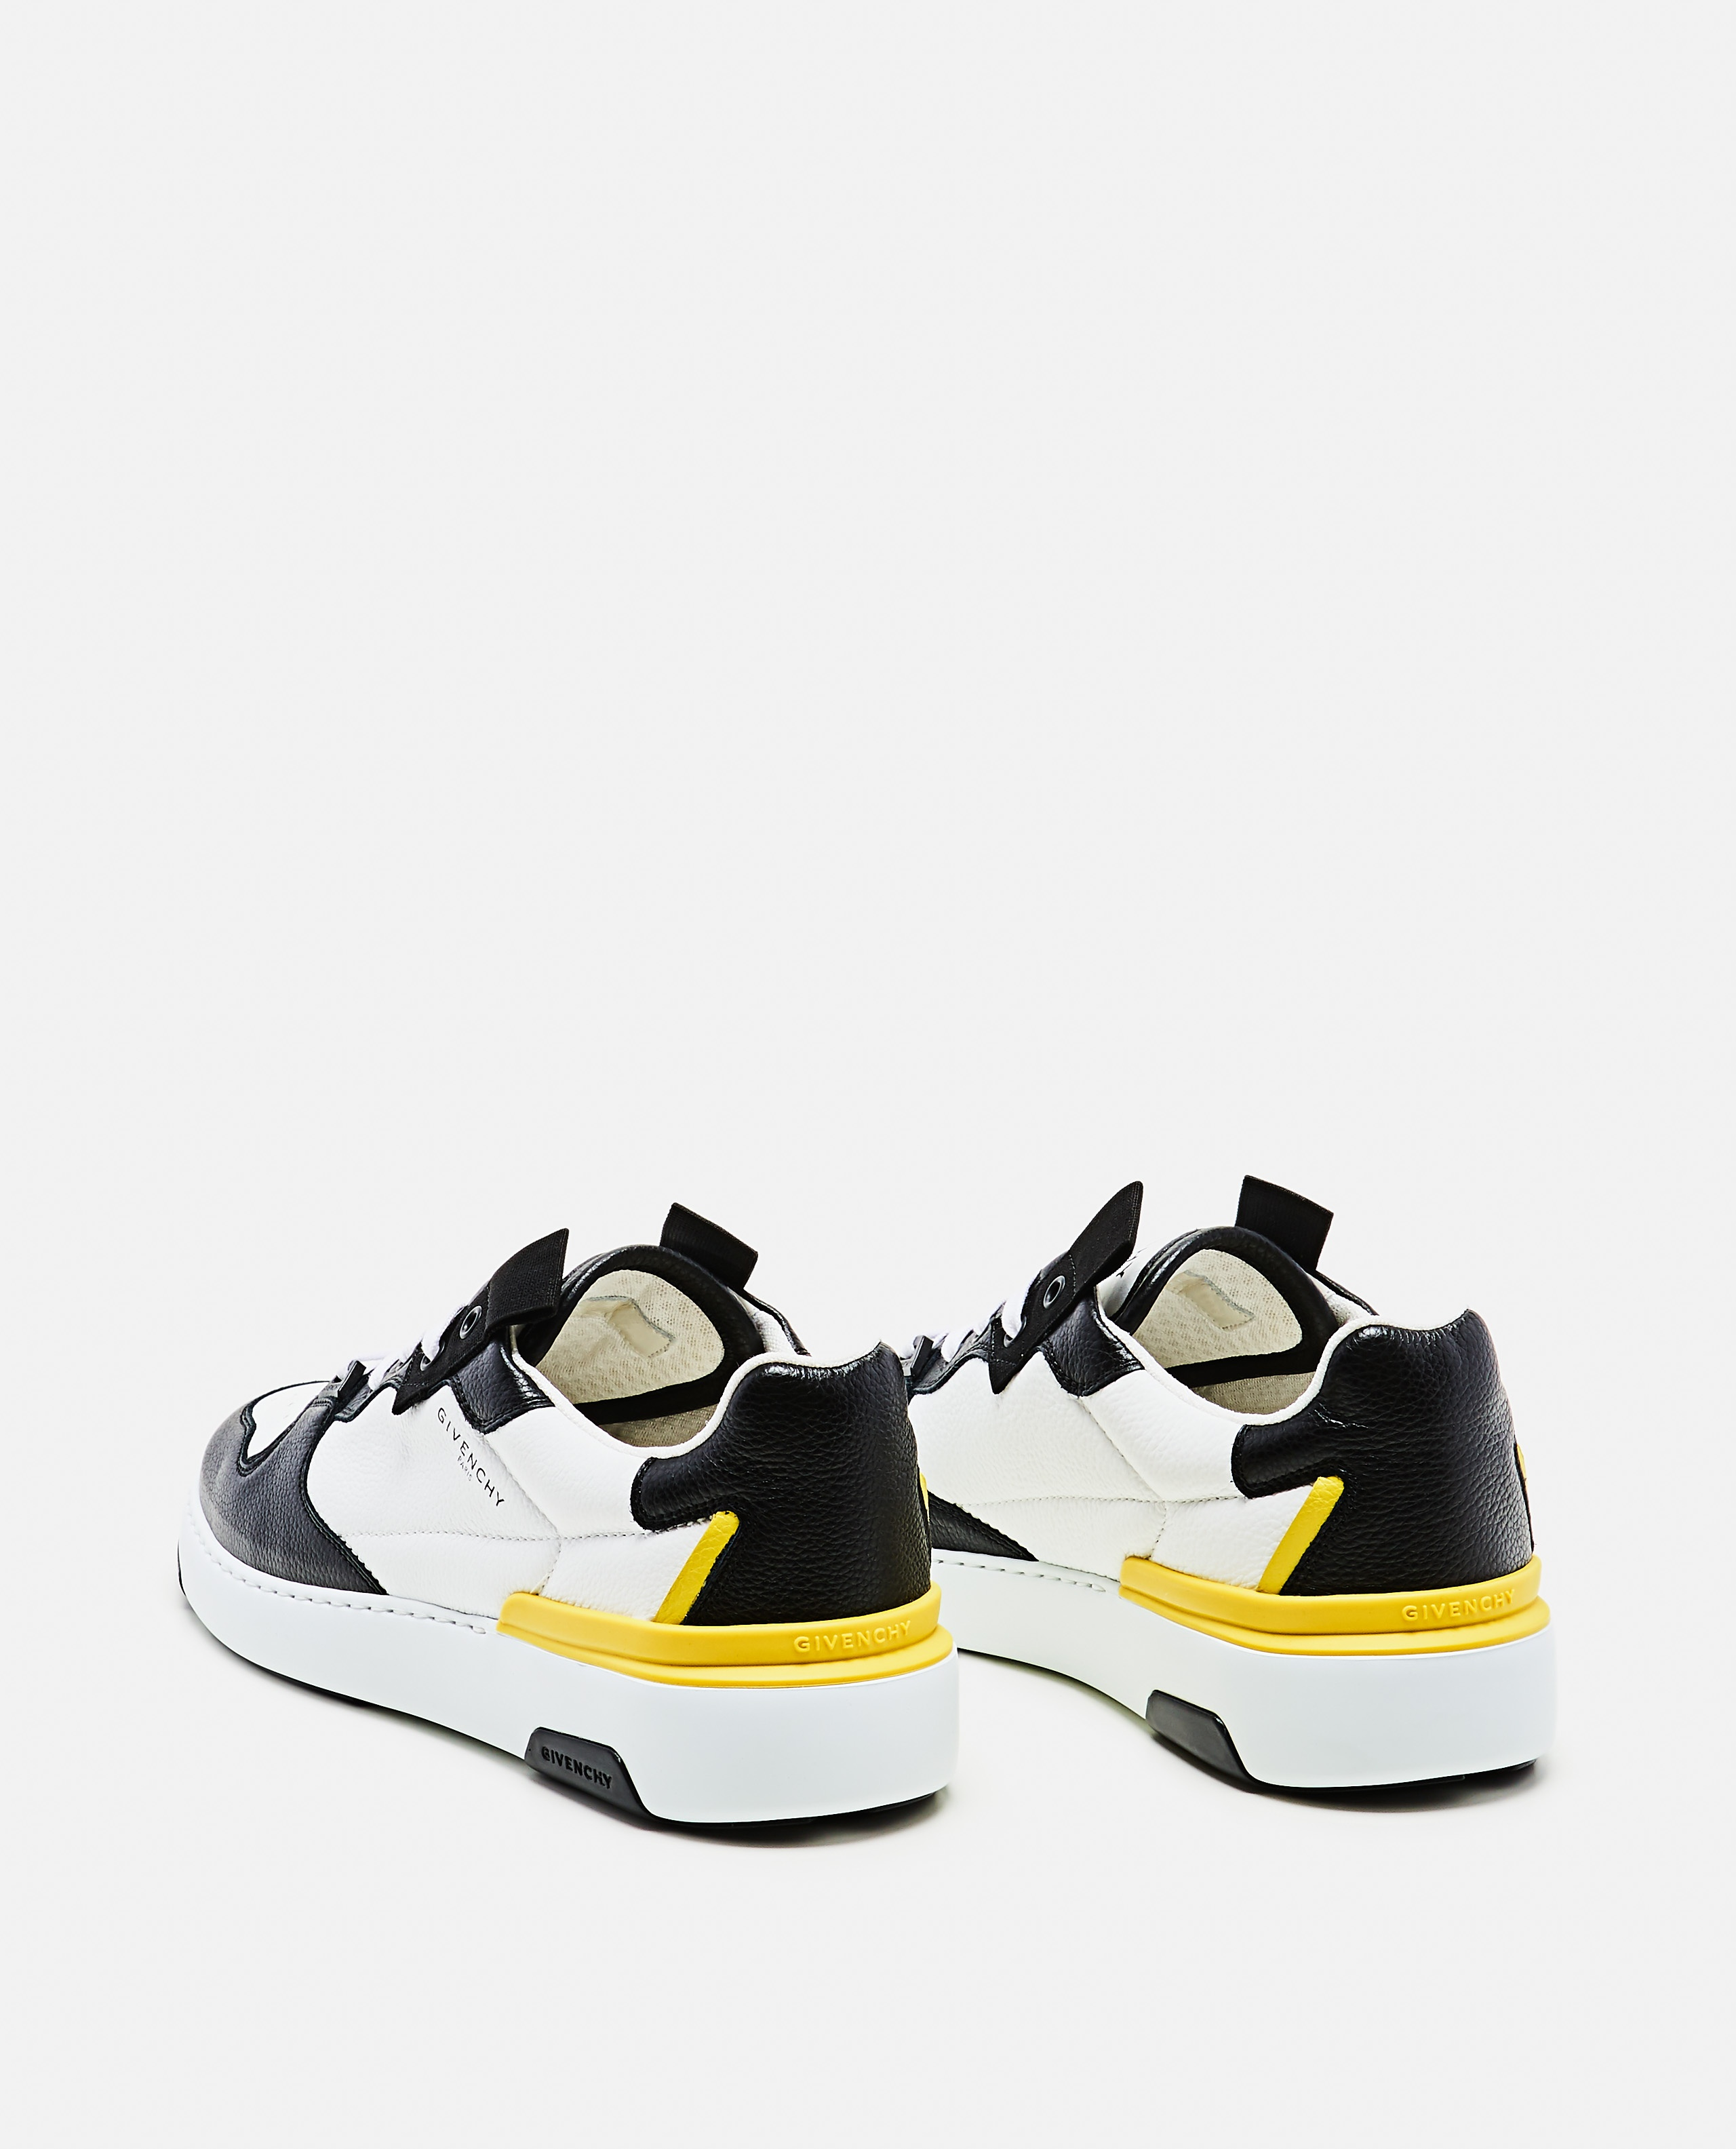 Sneakers WING SNEAKER LOW Men Givenchy 000253290037418 3